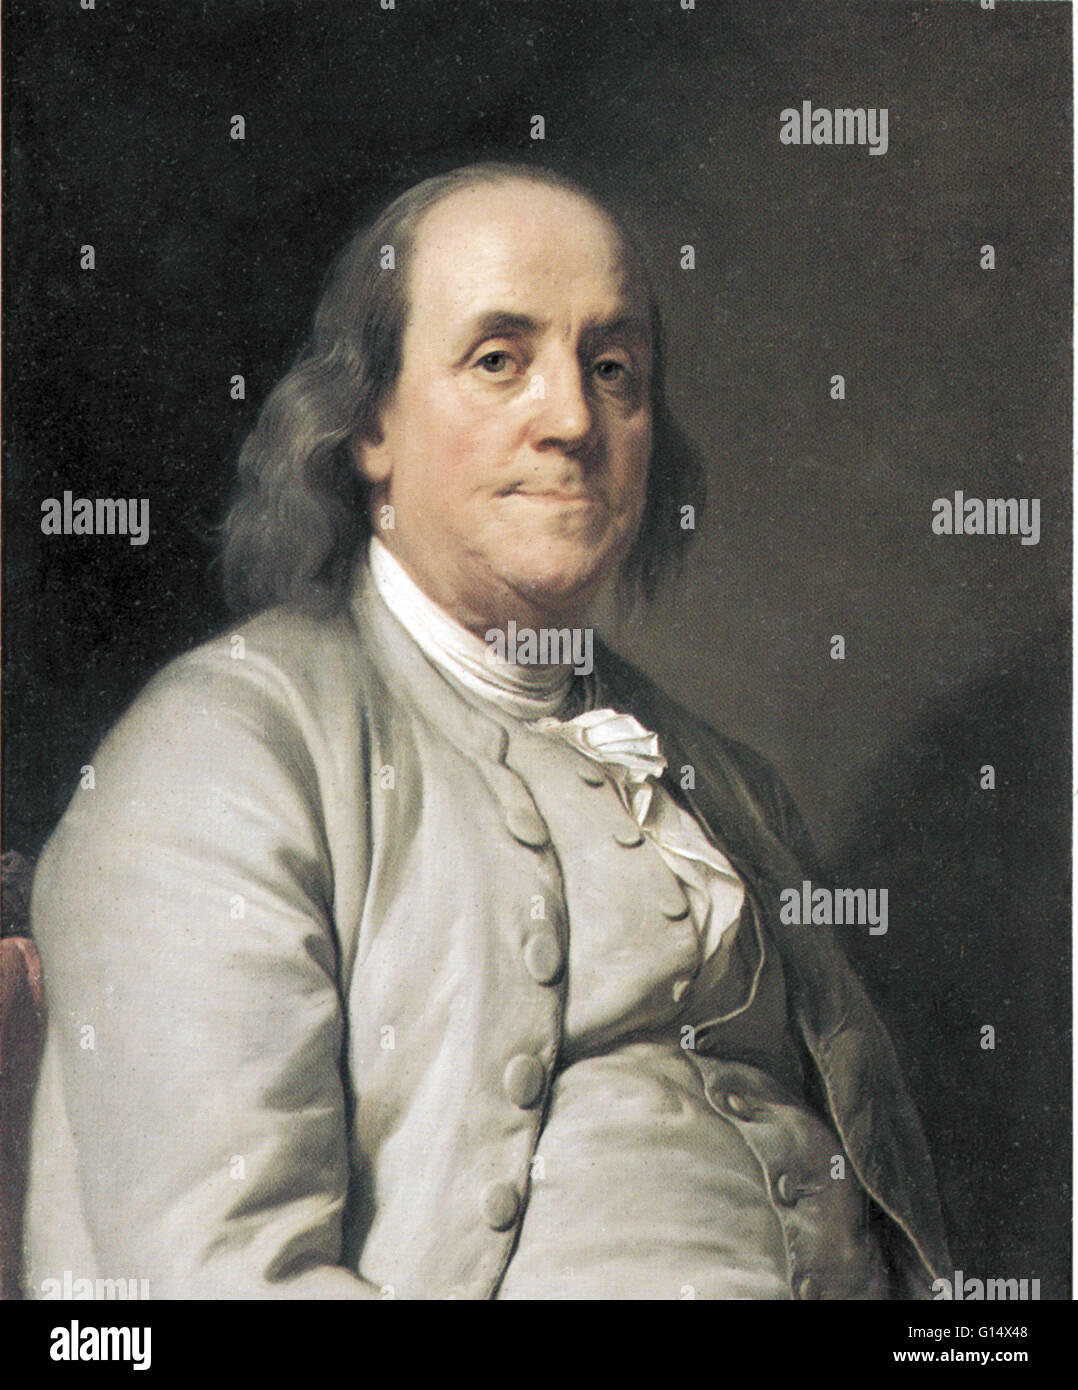 benjamin franklin lightning stock photos benjamin franklin lightning stock images alamy. Black Bedroom Furniture Sets. Home Design Ideas